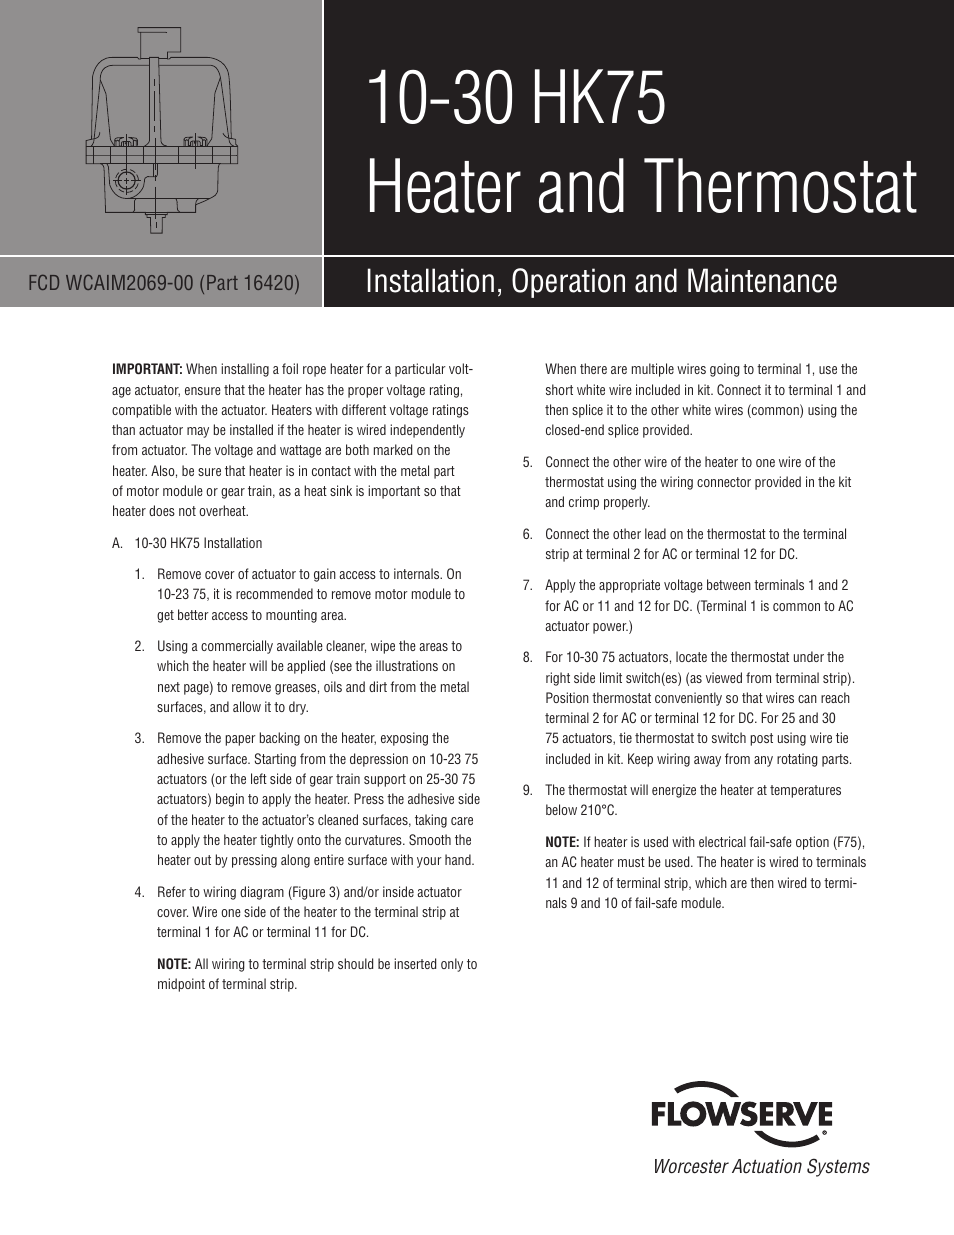 Flowserve 10-30 HK75 Heater and Thermostat User Manual | 2 pages